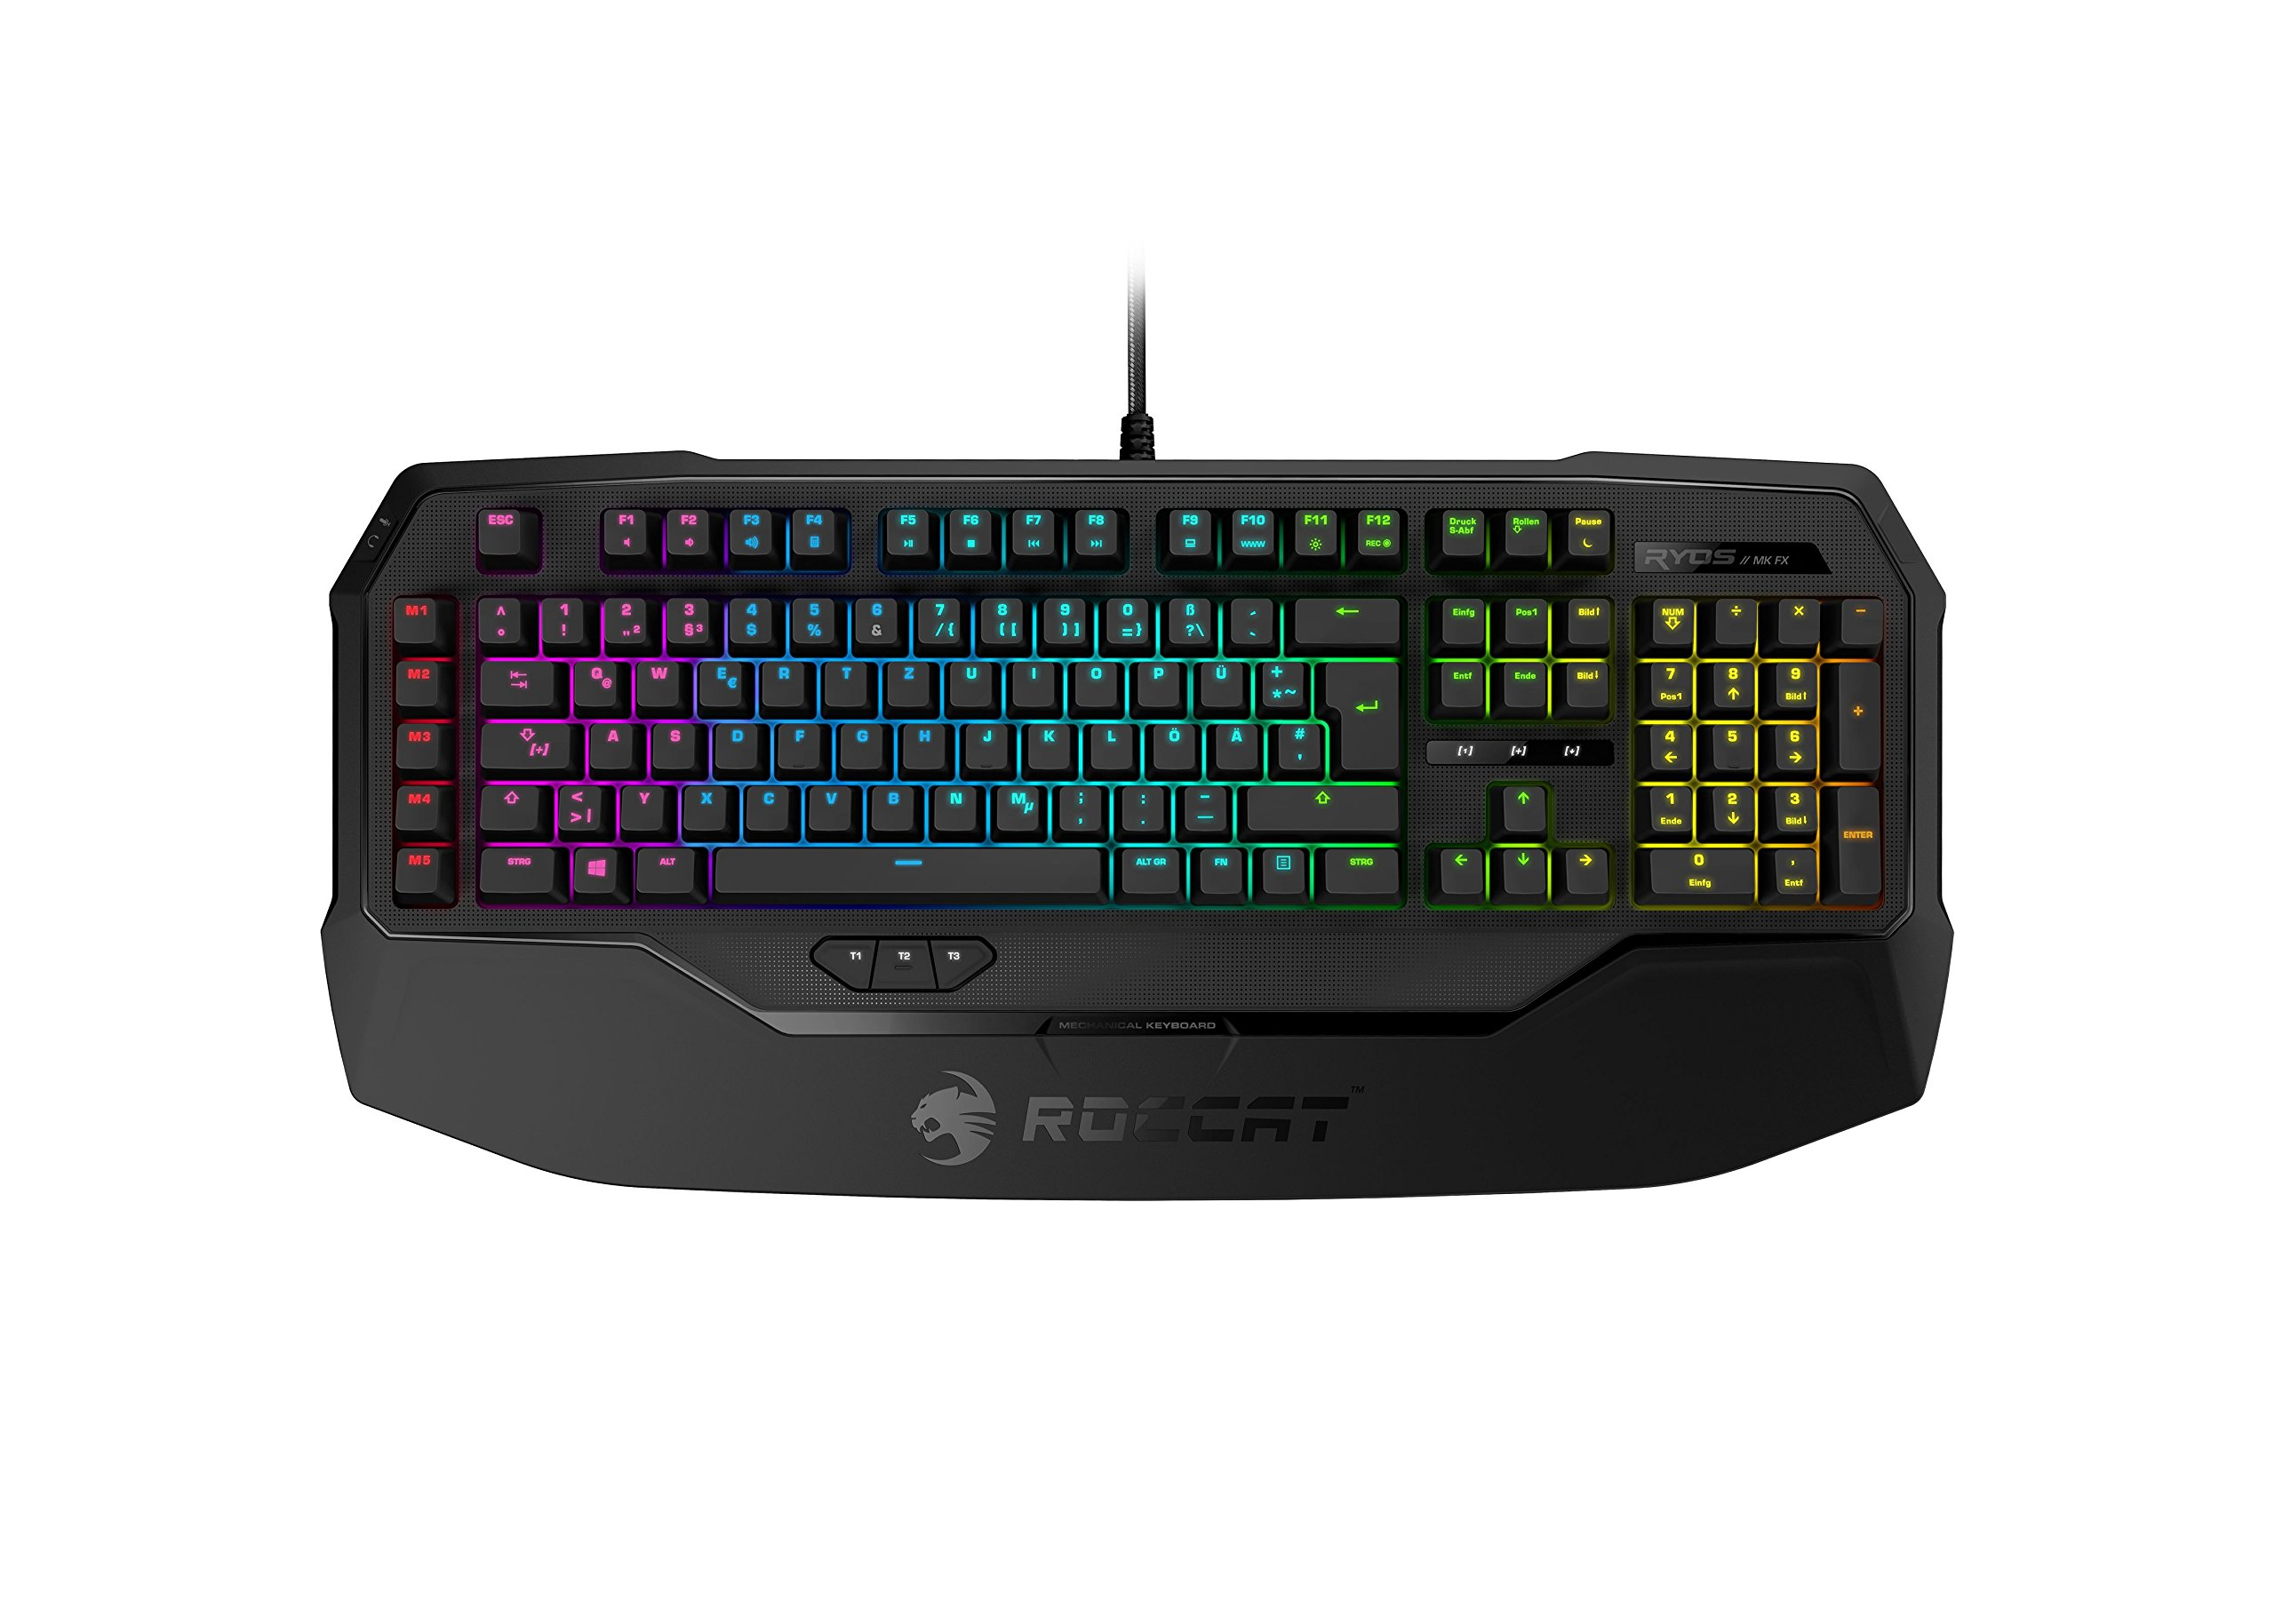 Teclado Mecanico : ROCCAT Ryos MK FX Brown Cherry Switch